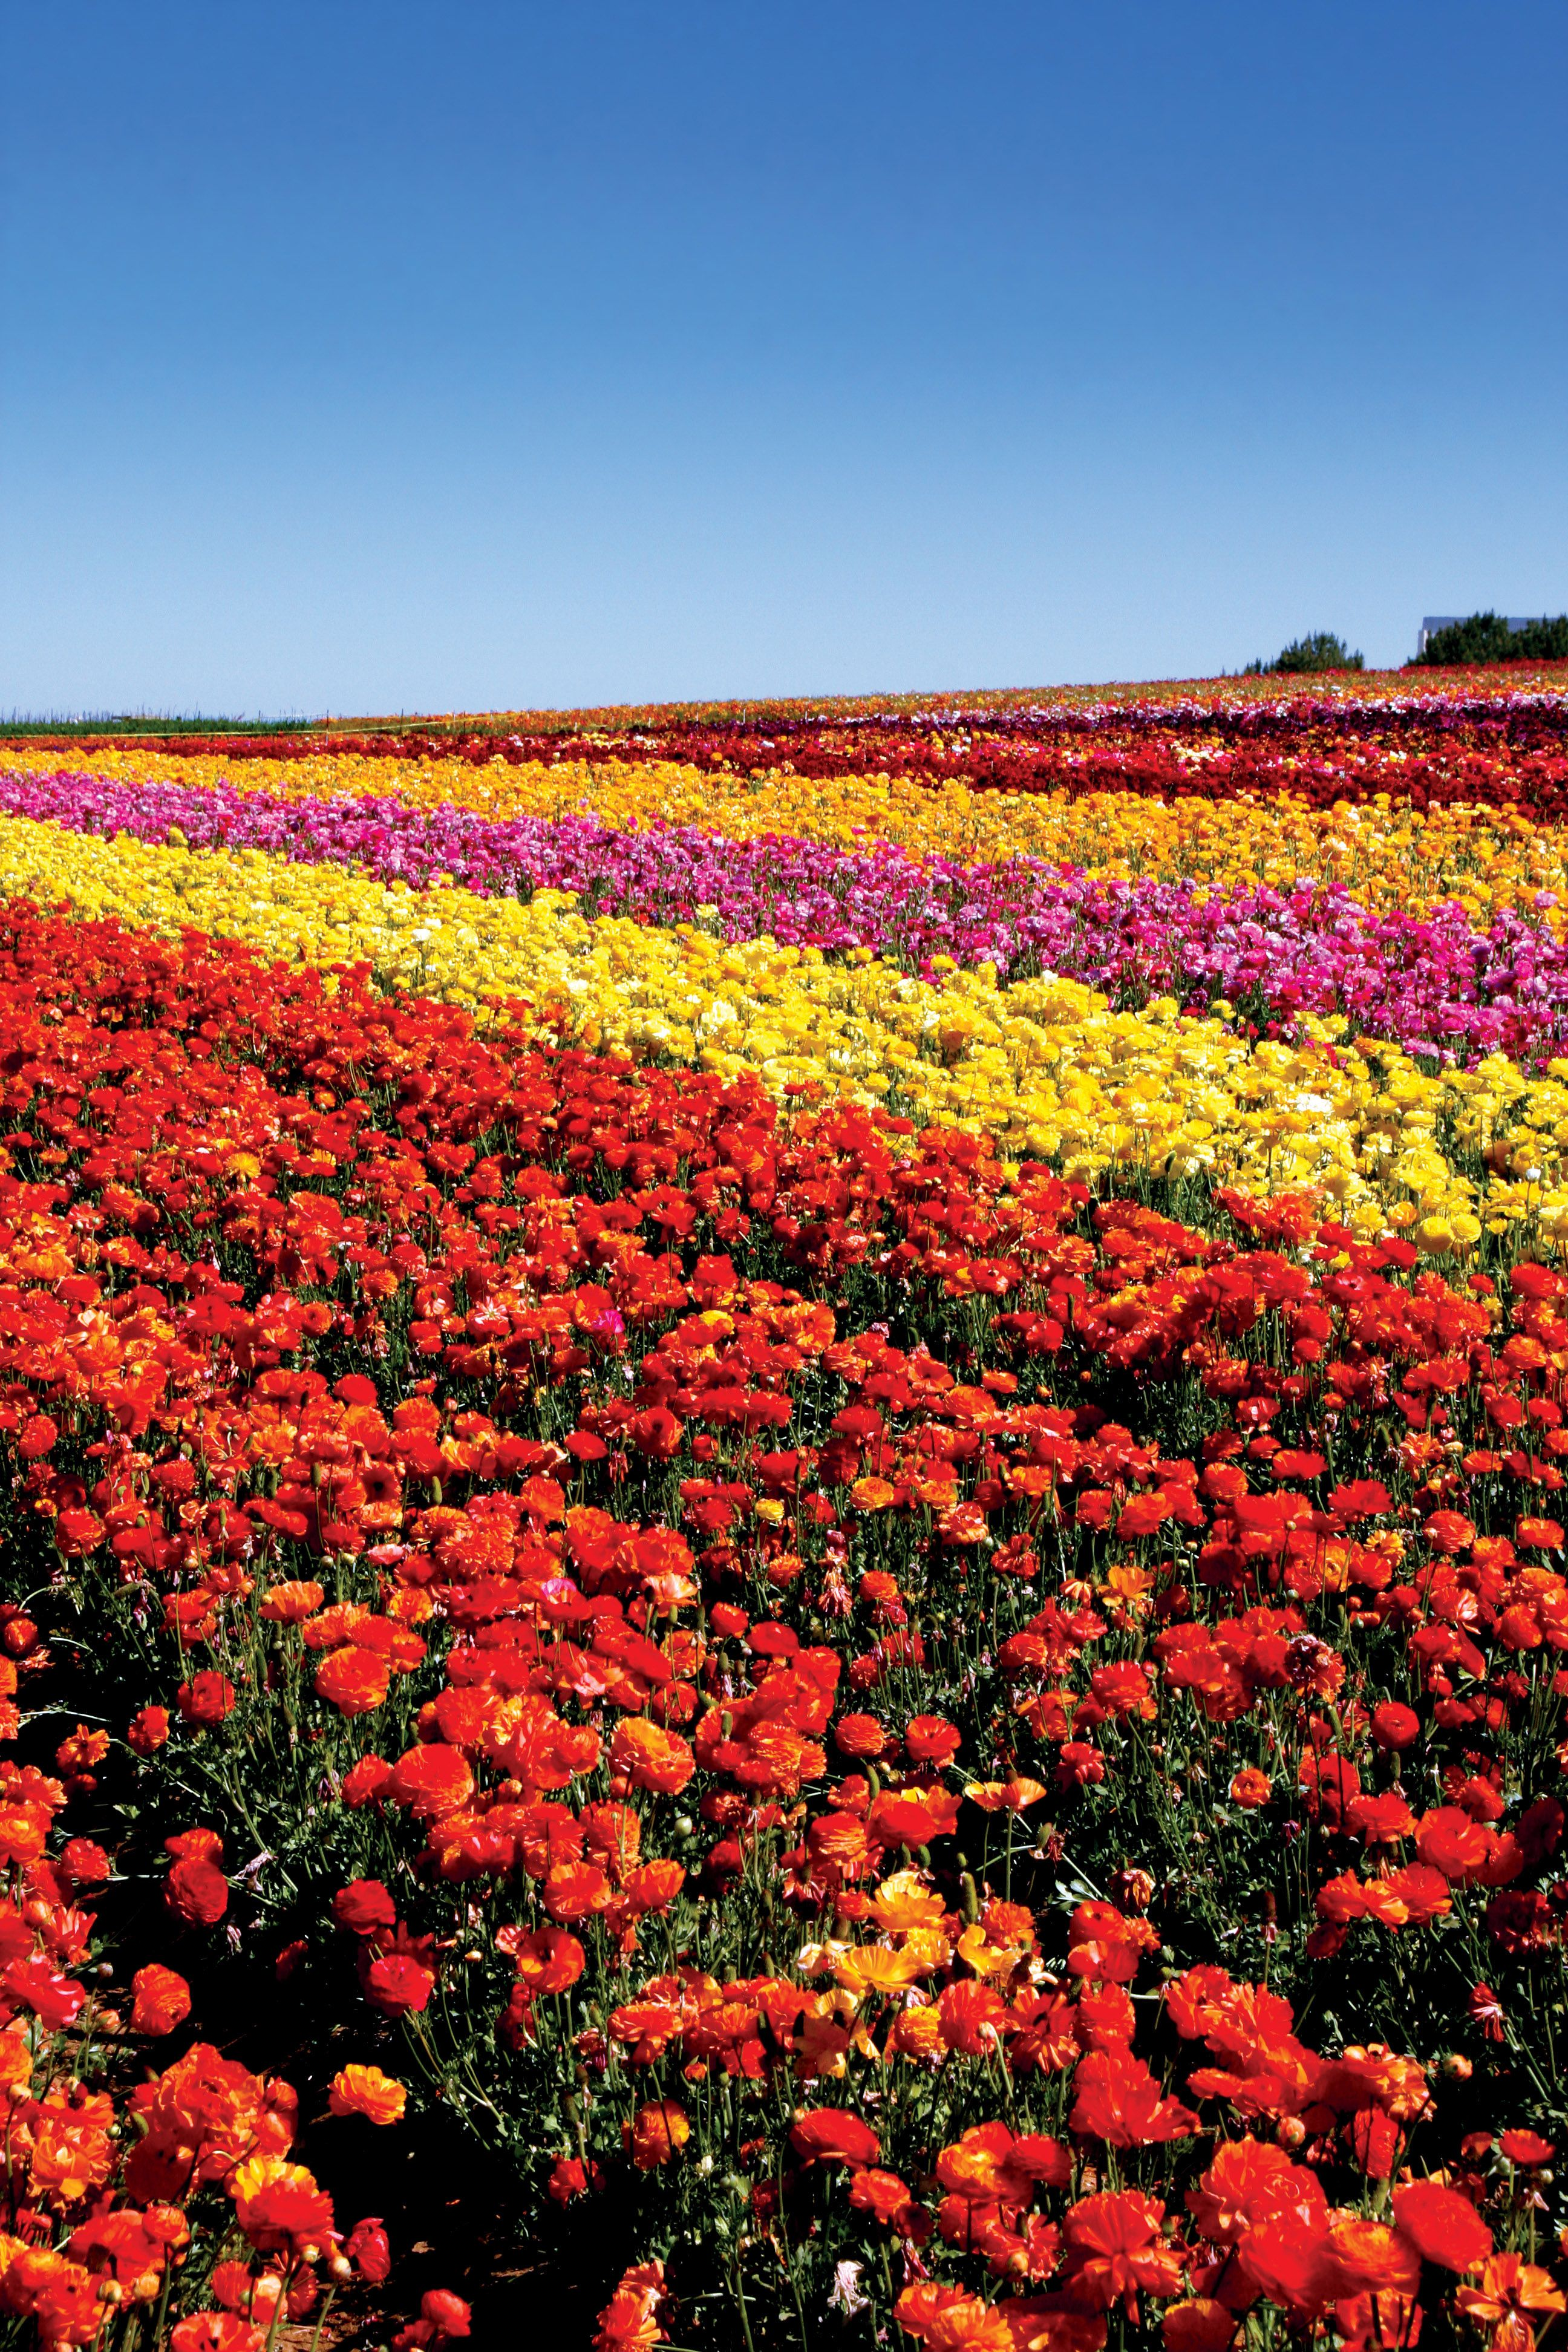 The Flower Fields Carlsbad Ca Roses Are Only Beginning Of Season Hy Valentine S Day We Open On March 1st